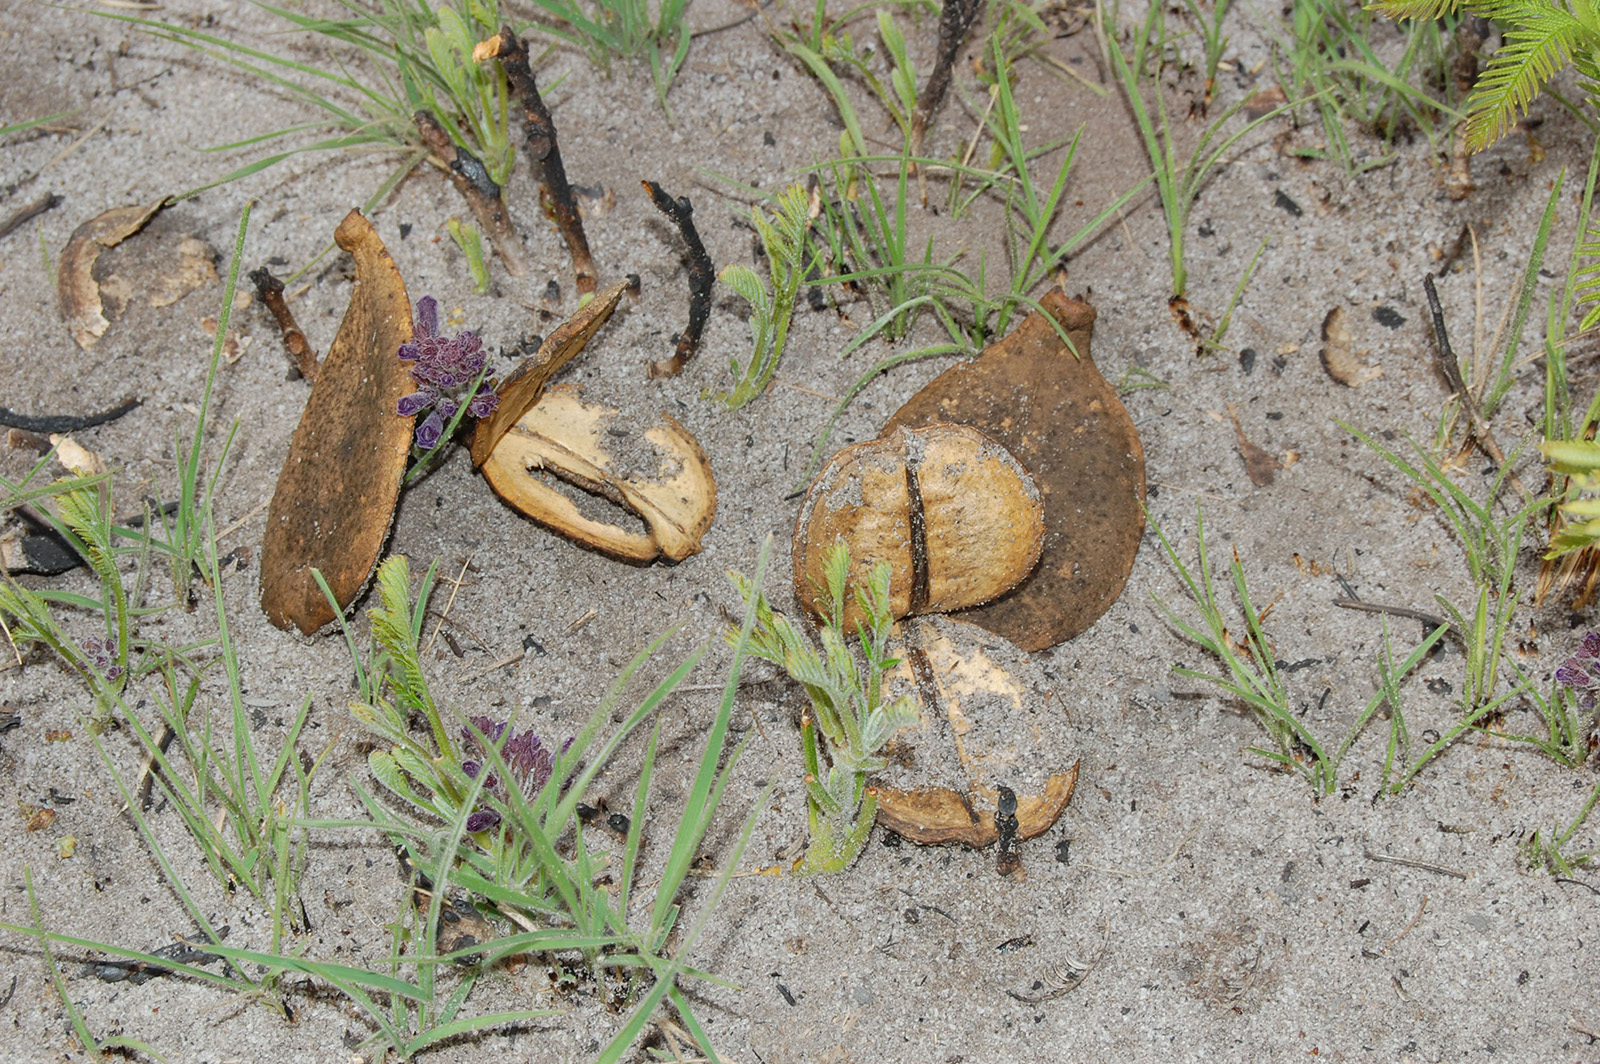 Remains of the fruit of Jacaranda decurrens and unopened inflorescences